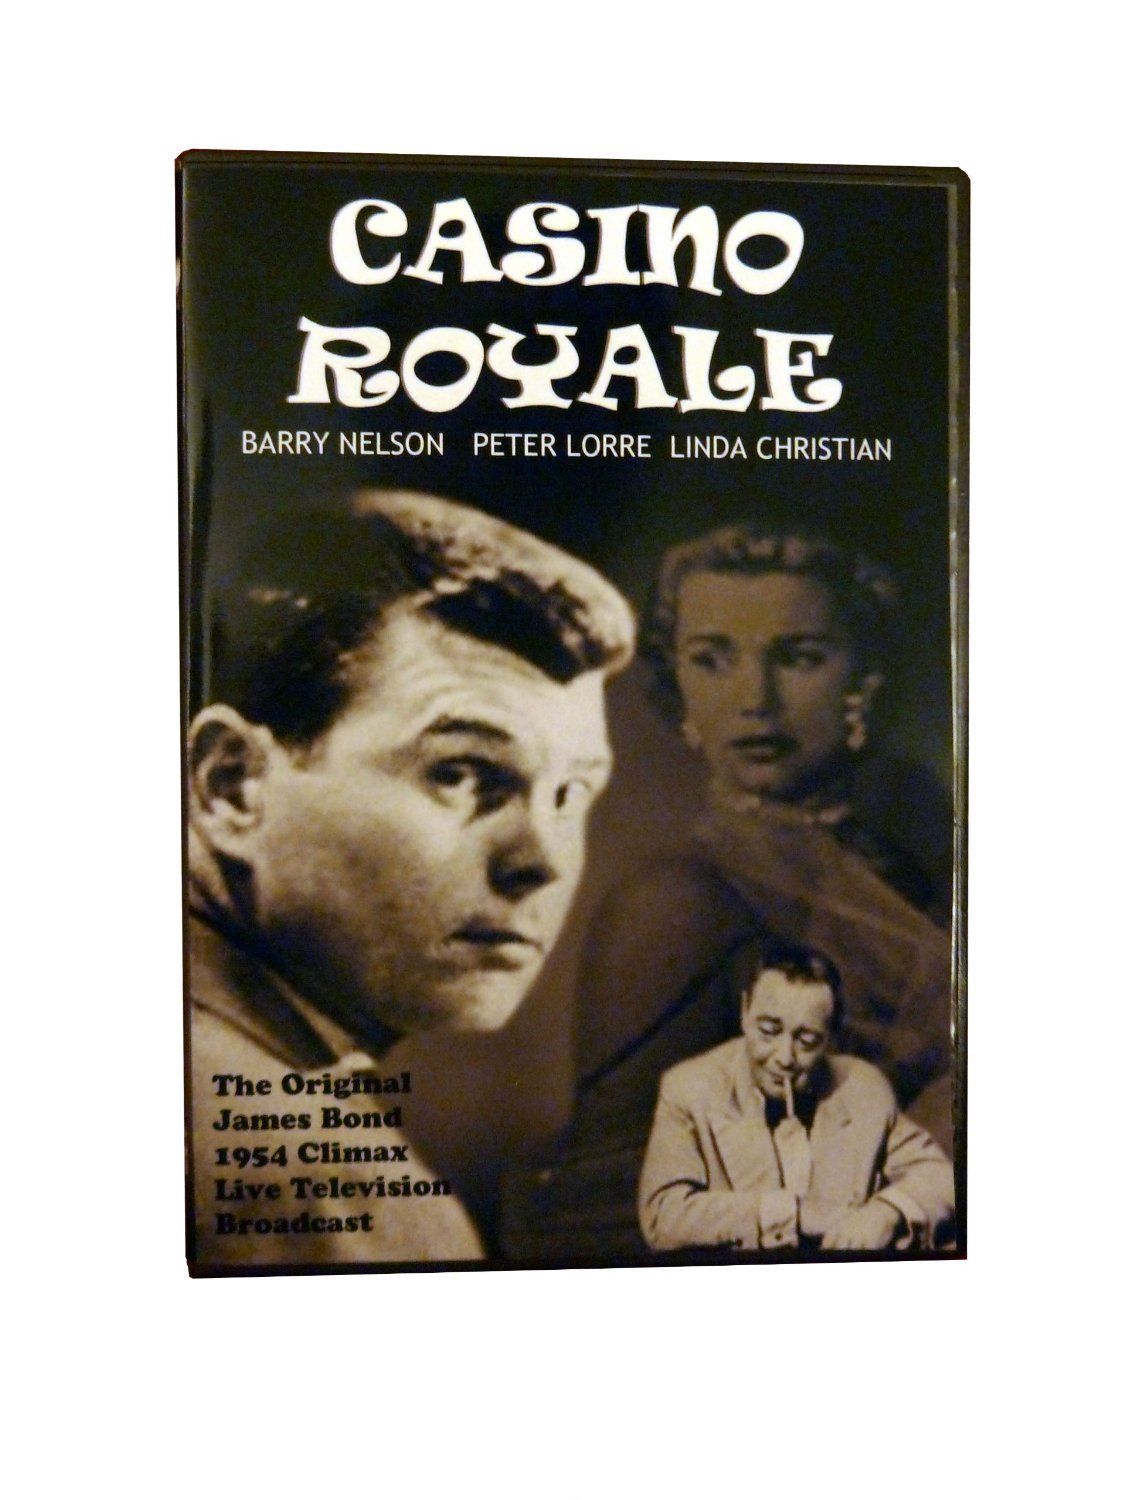 1954 casino royale dvd barry nelson how to help a loved one with a gambling addiction